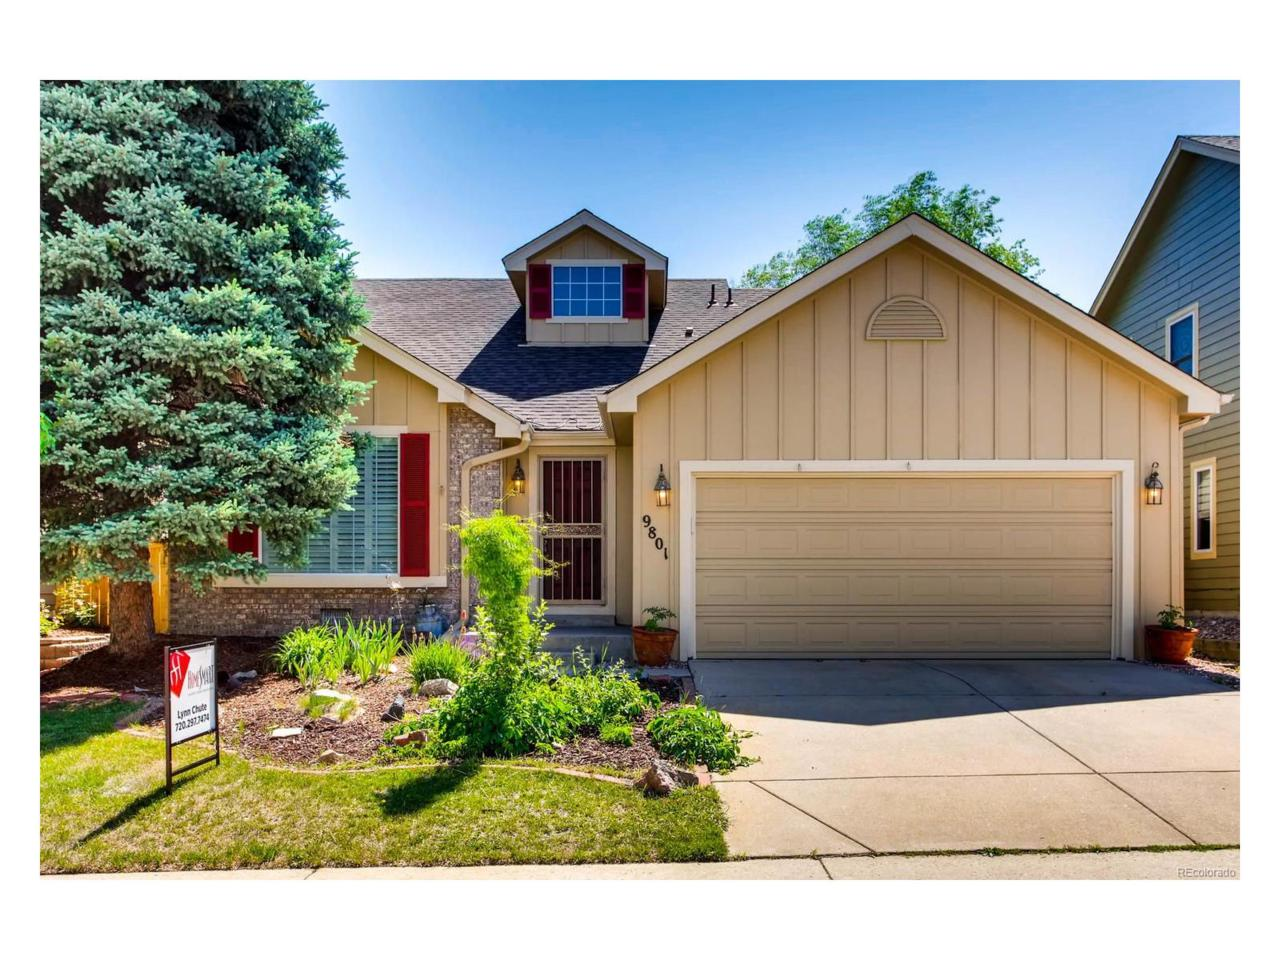 9801 Foxhill Circle, Highlands Ranch, CO 80129 (MLS #5086547) :: 8z Real Estate